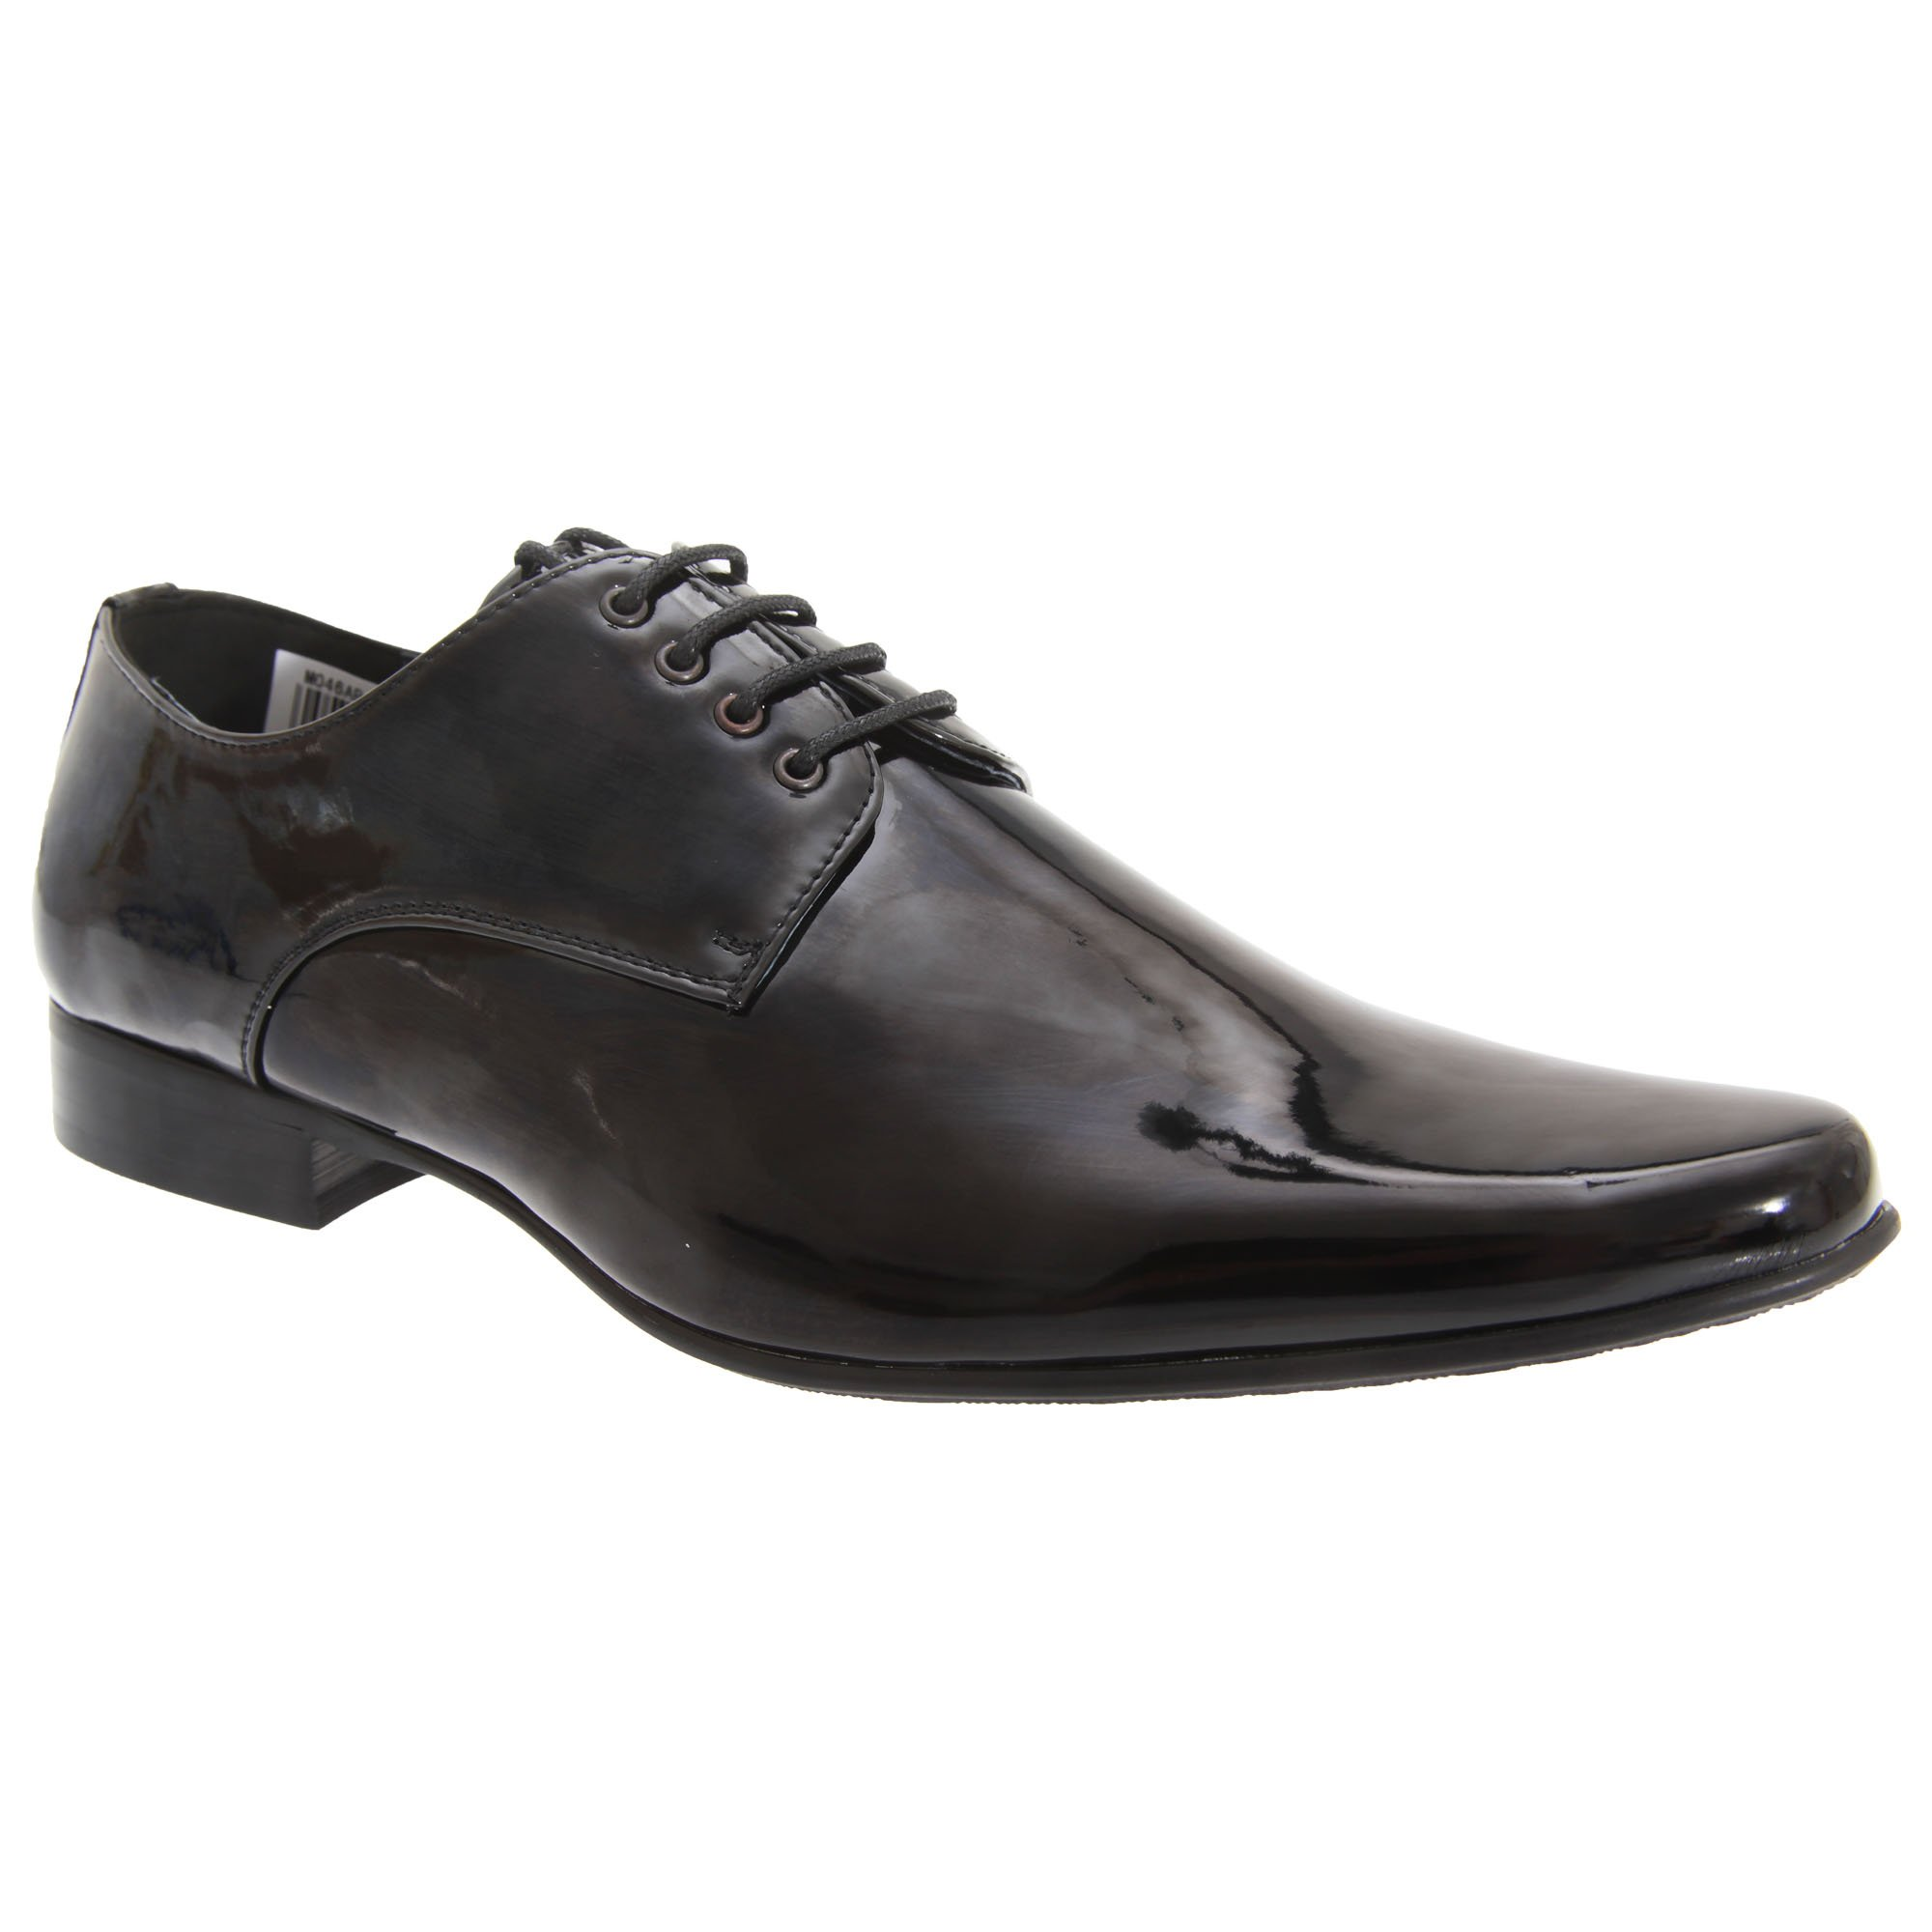 Goor Mens Patent Leather Lace-Up Chisel Toe Gibson Dress Shoes (12 US) (Black Patent)